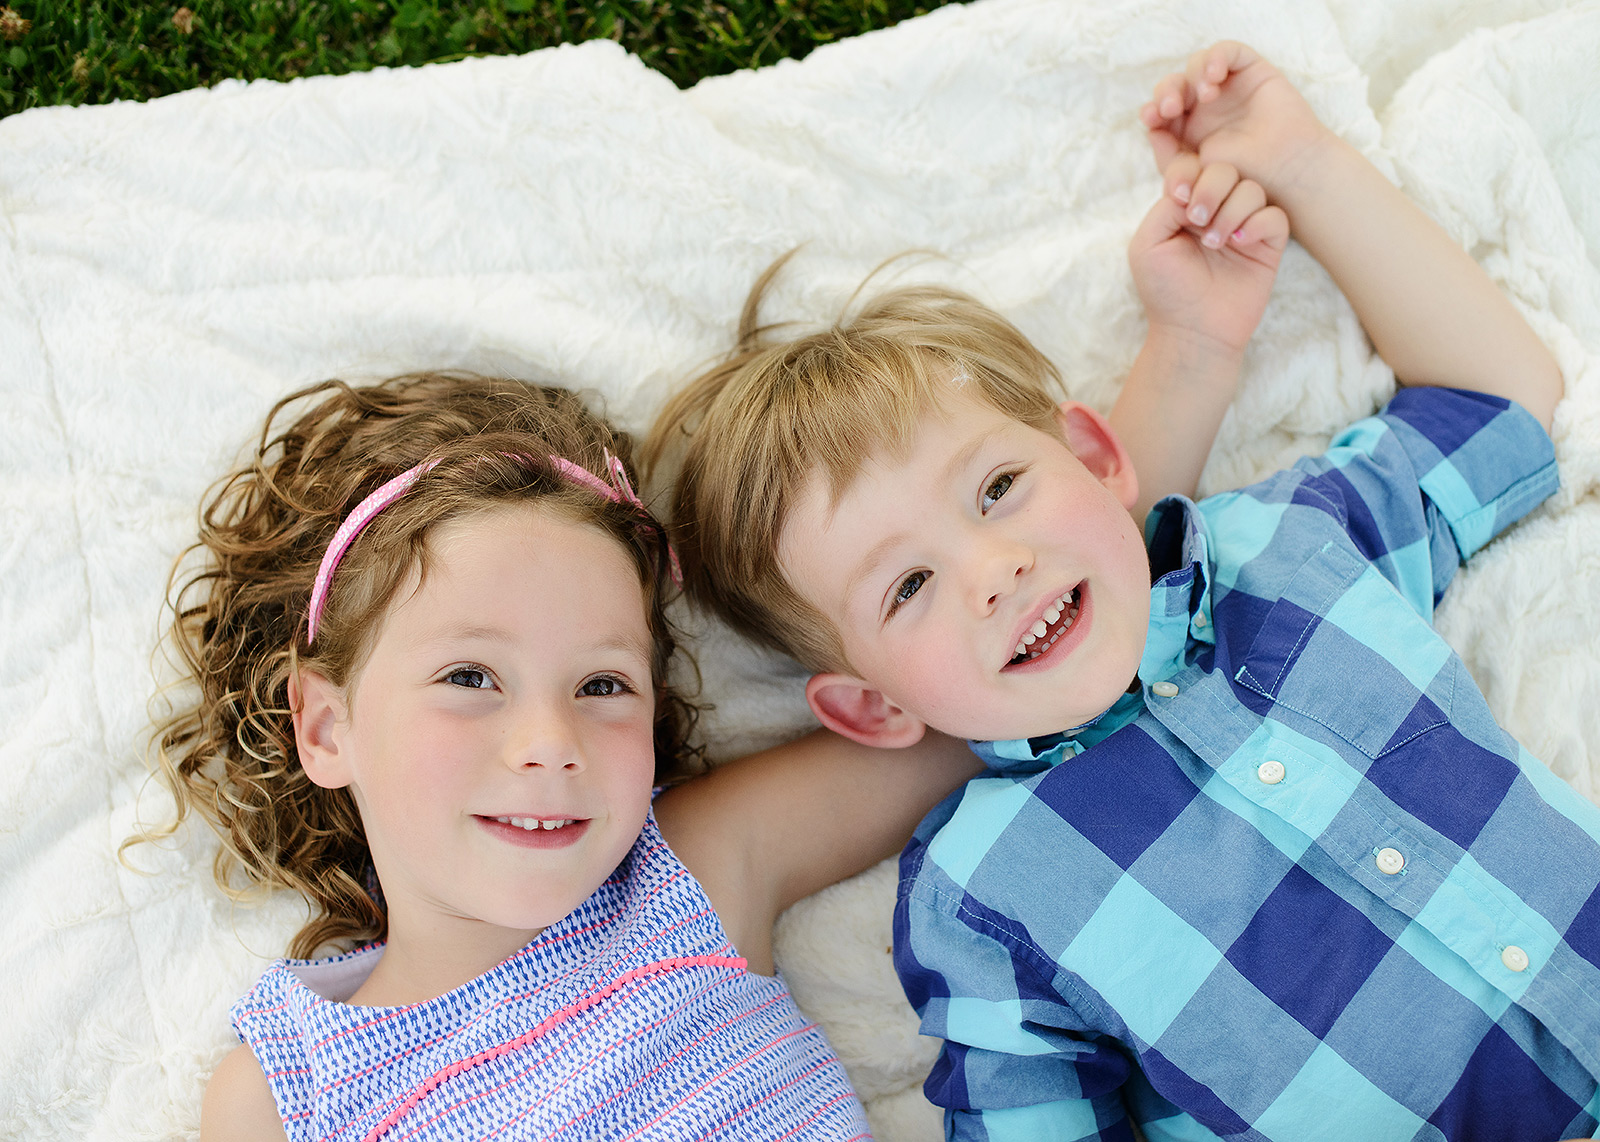 Sister and brother lying on picnic blanket outdoors in Sacramento backyard